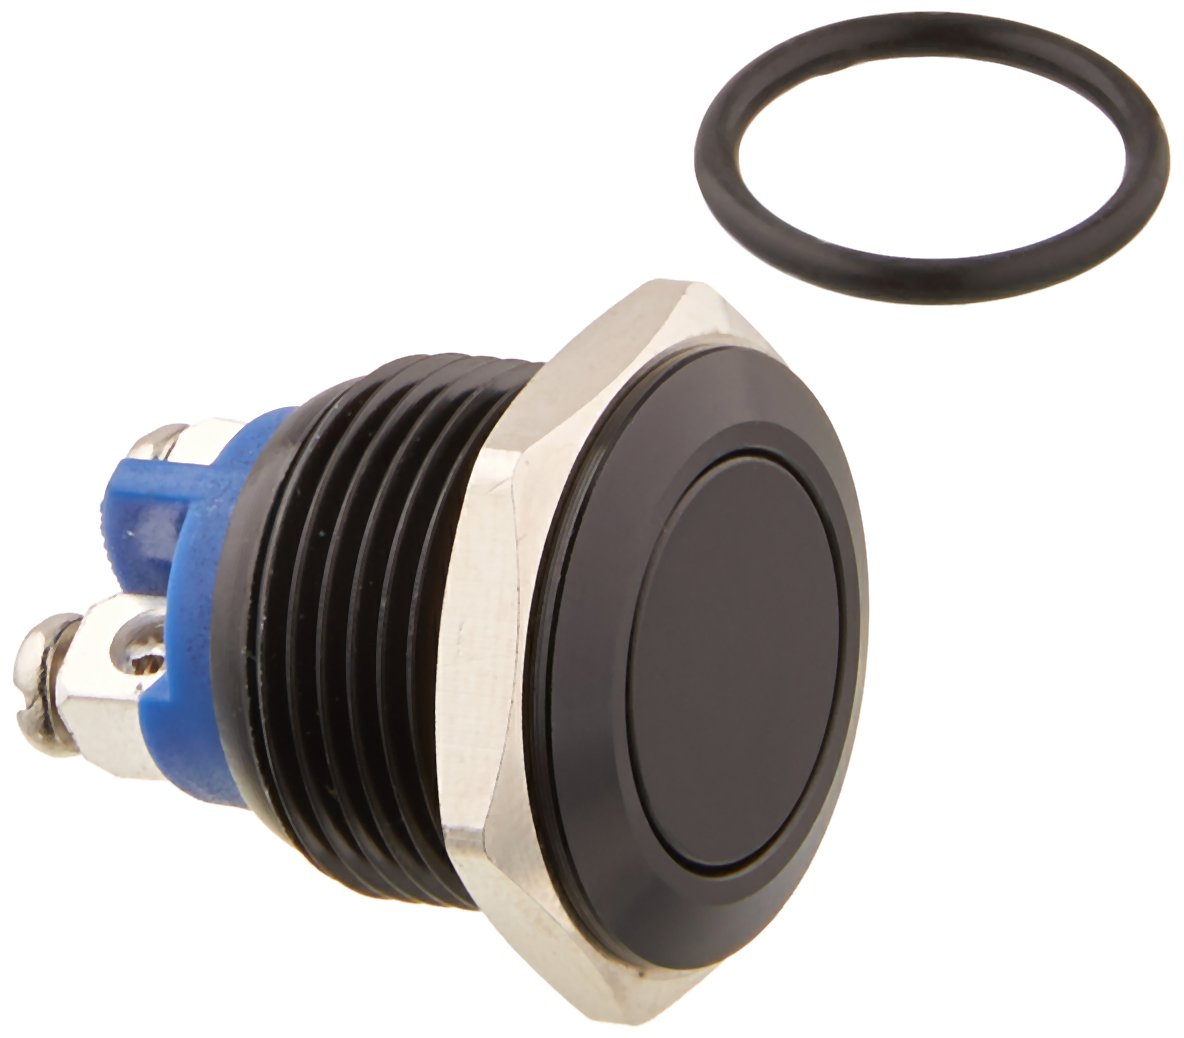 Black Shell Yakamoz 12mm 1//2 Metal Momentary Push Button Switch 2A//36V DC SPST 1NO Industrial Car Switch